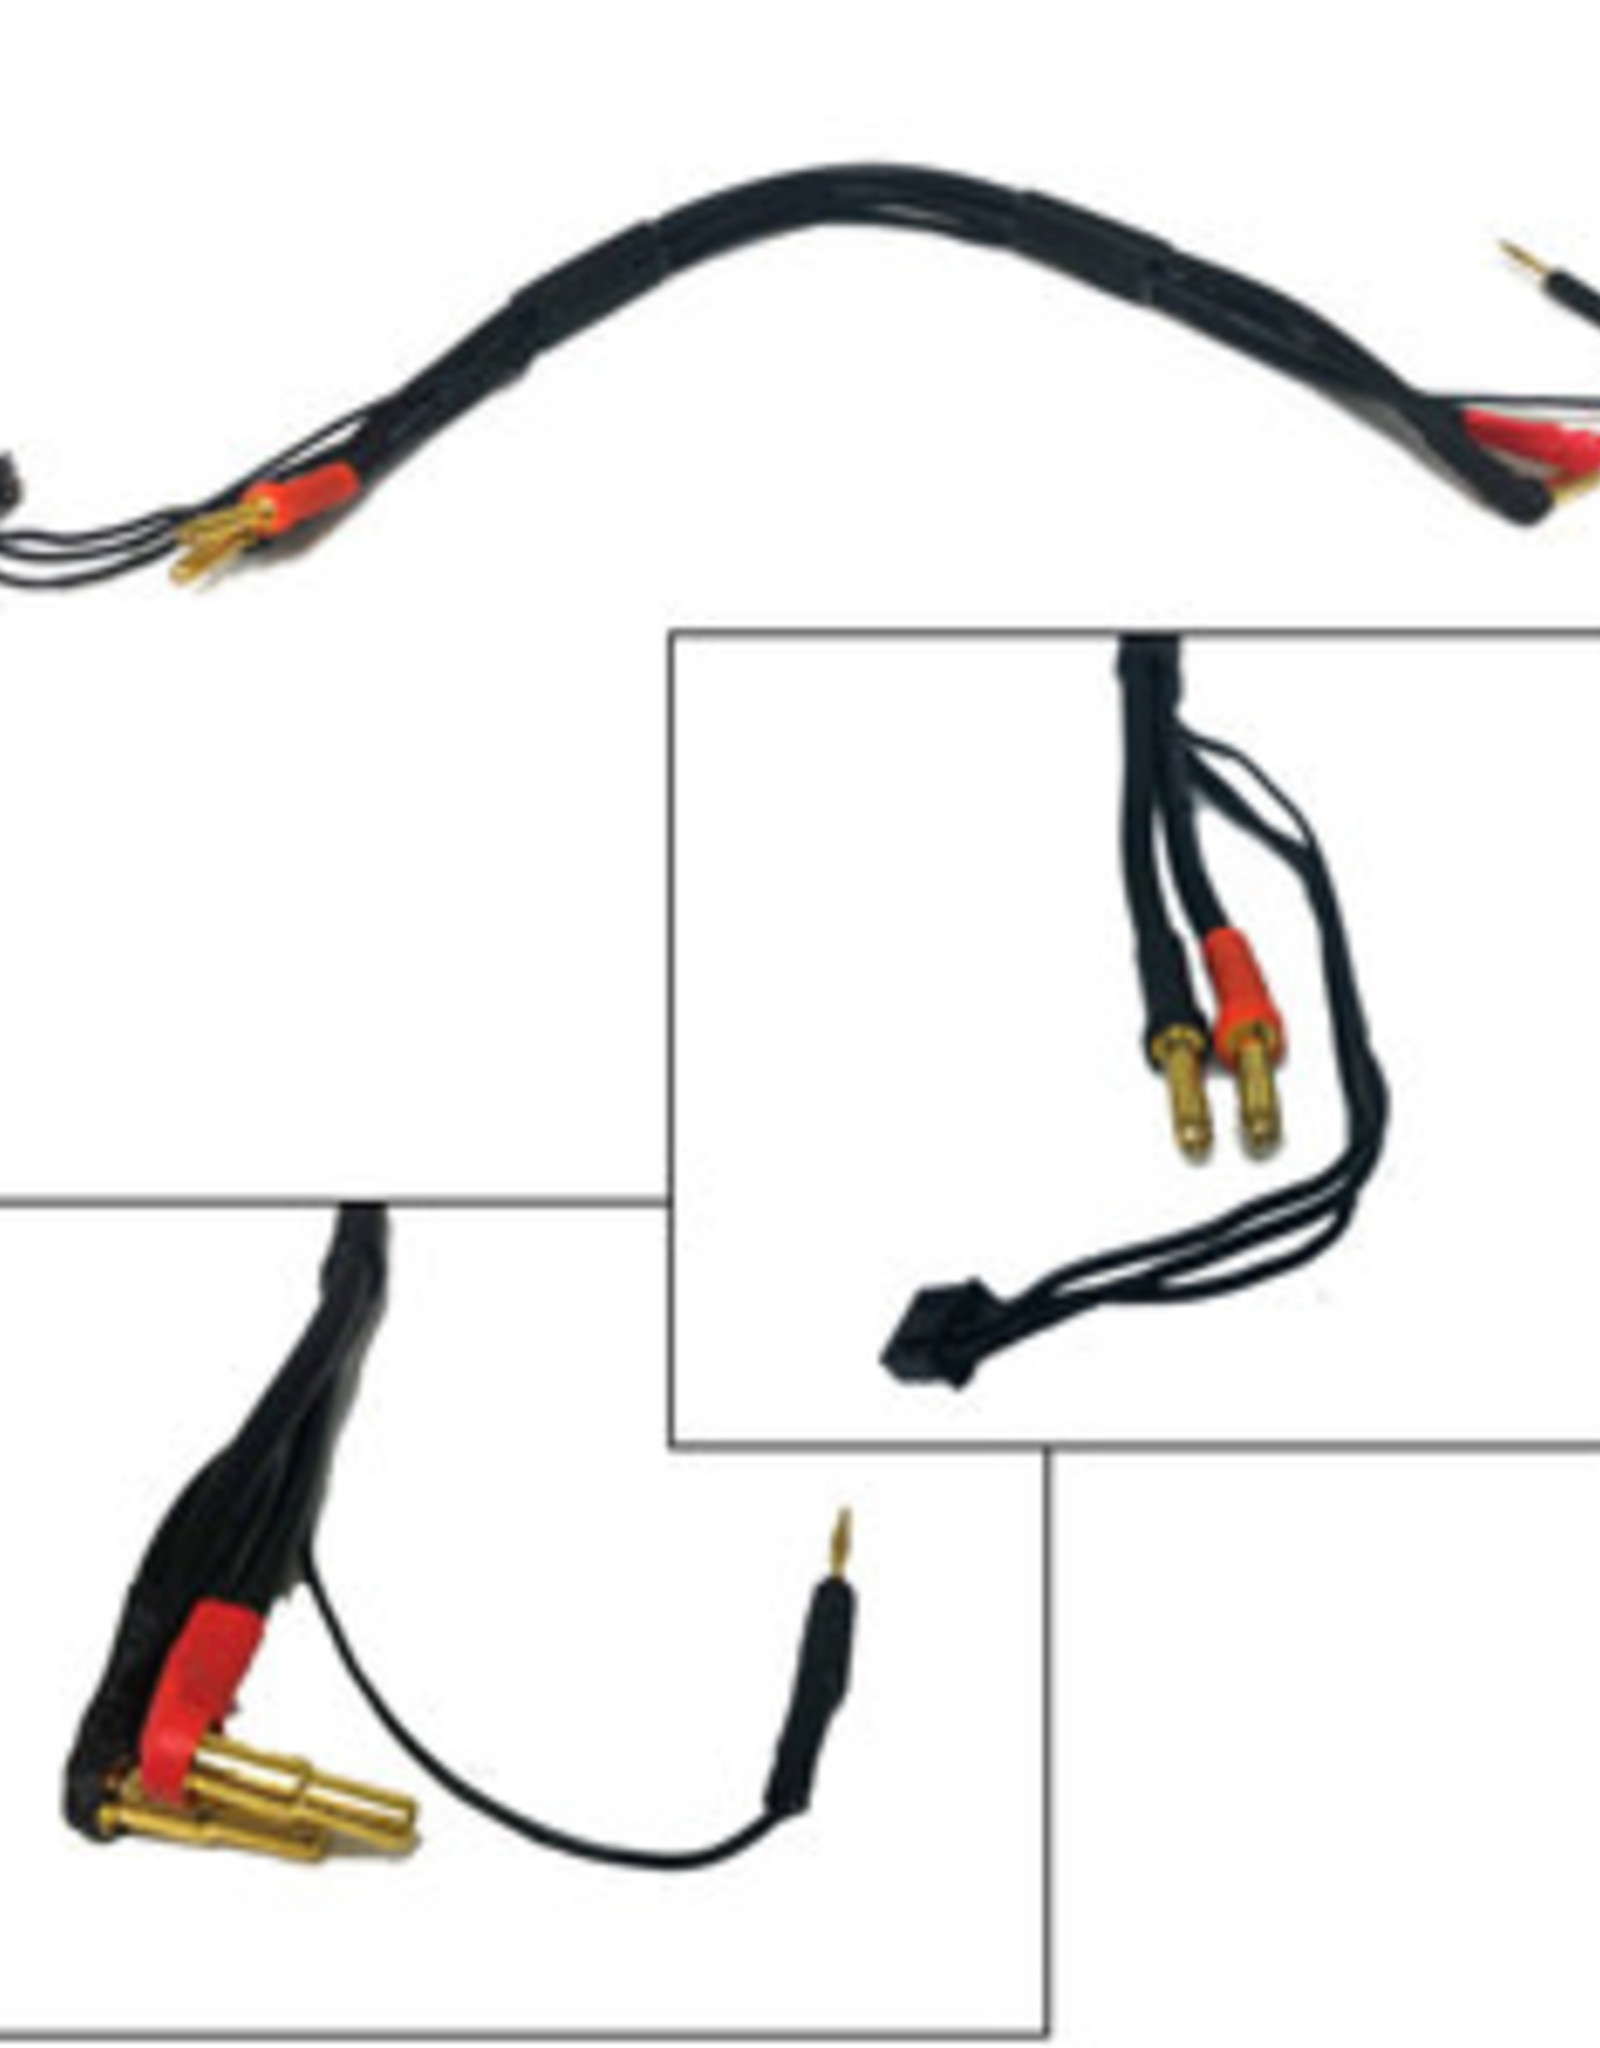 Lipo Charge Cable w/ Bullet Plug